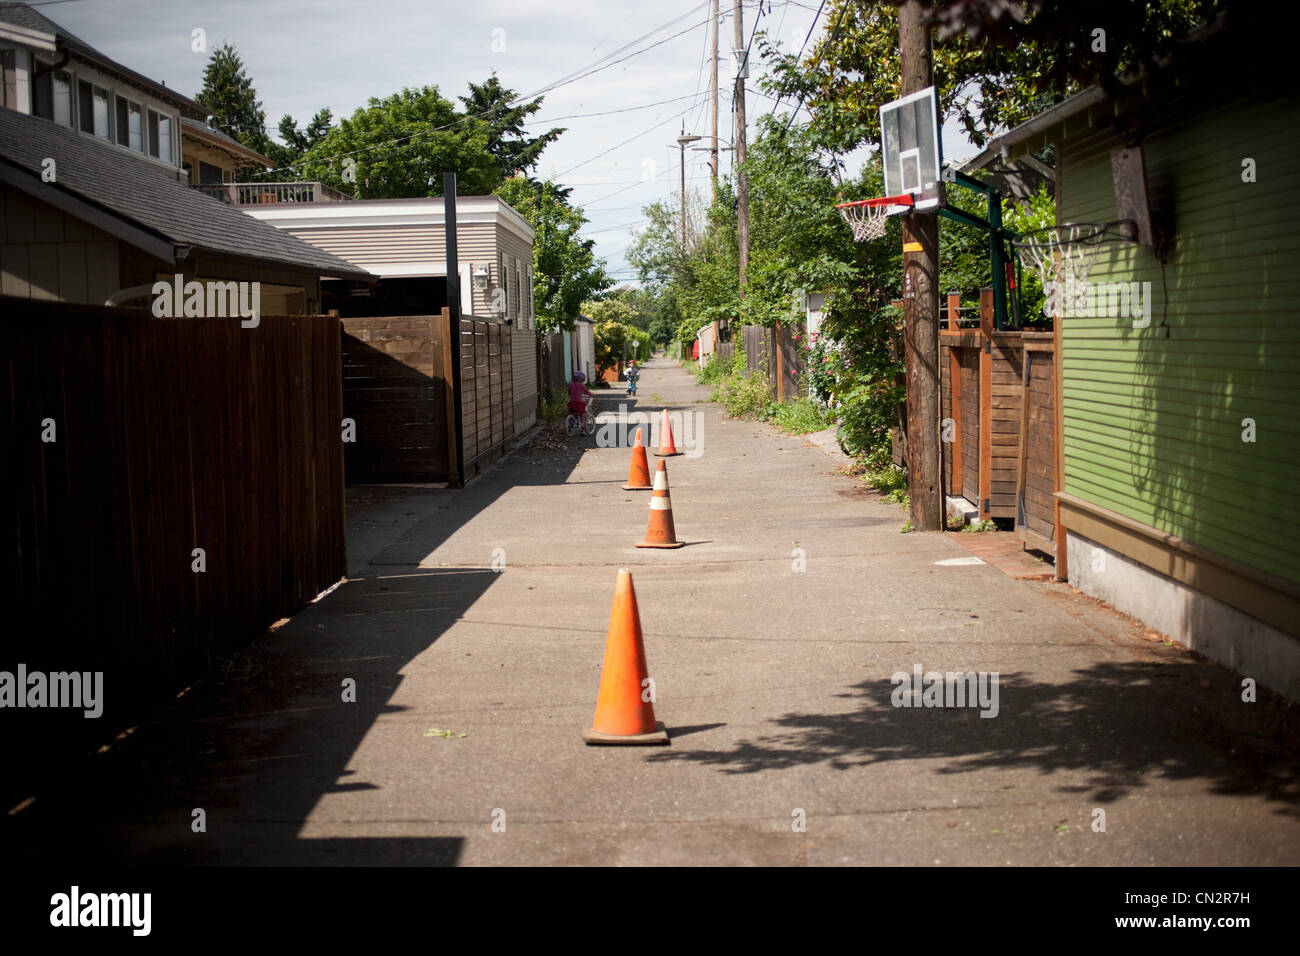 Traffic cones in alley - Stock Image